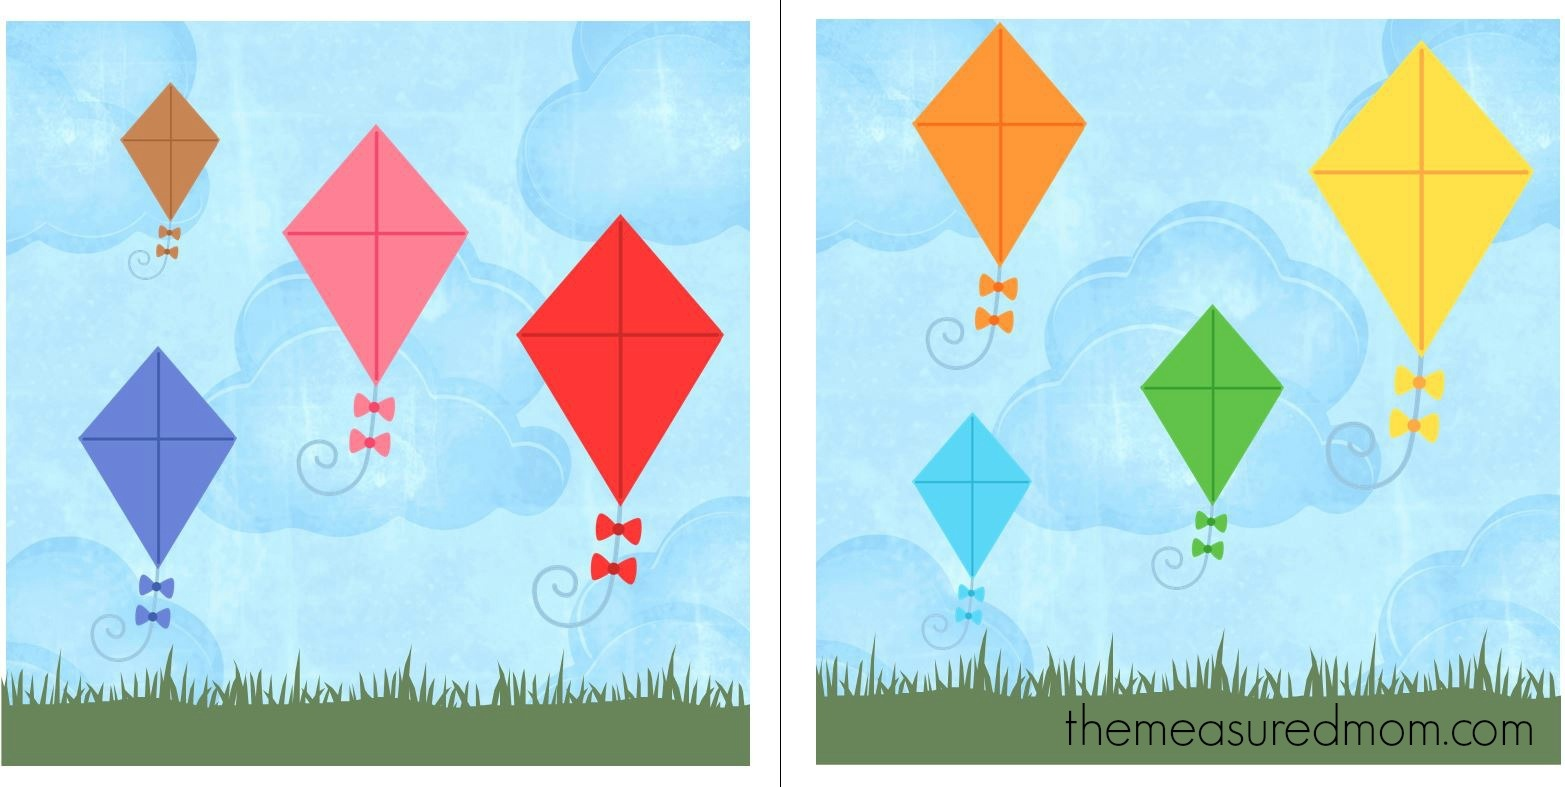 Free File Folder Game For Preschoolers: Kites! - The Measured Mom - Free Printable Preschool Folder Games